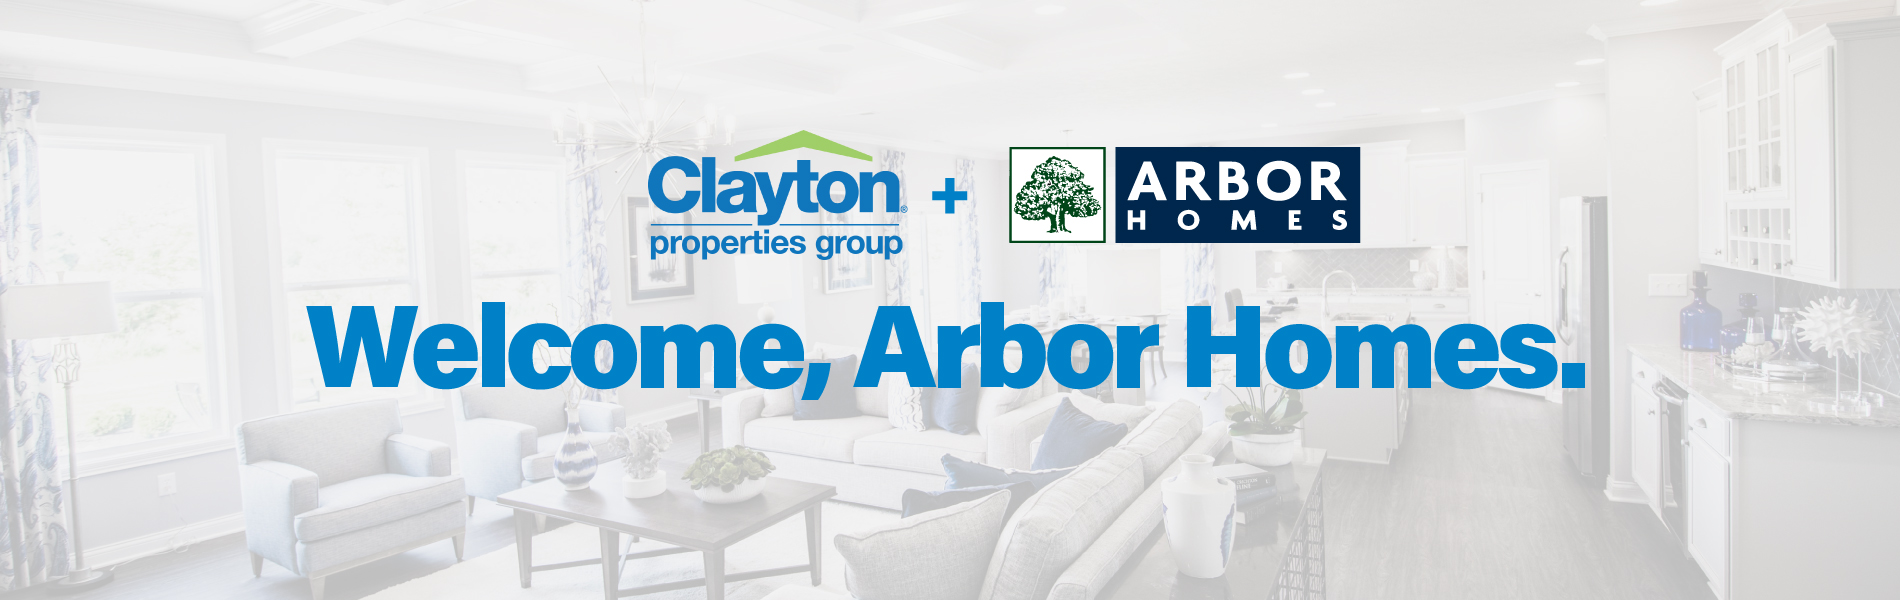 Banner image for Clayton Properties Group